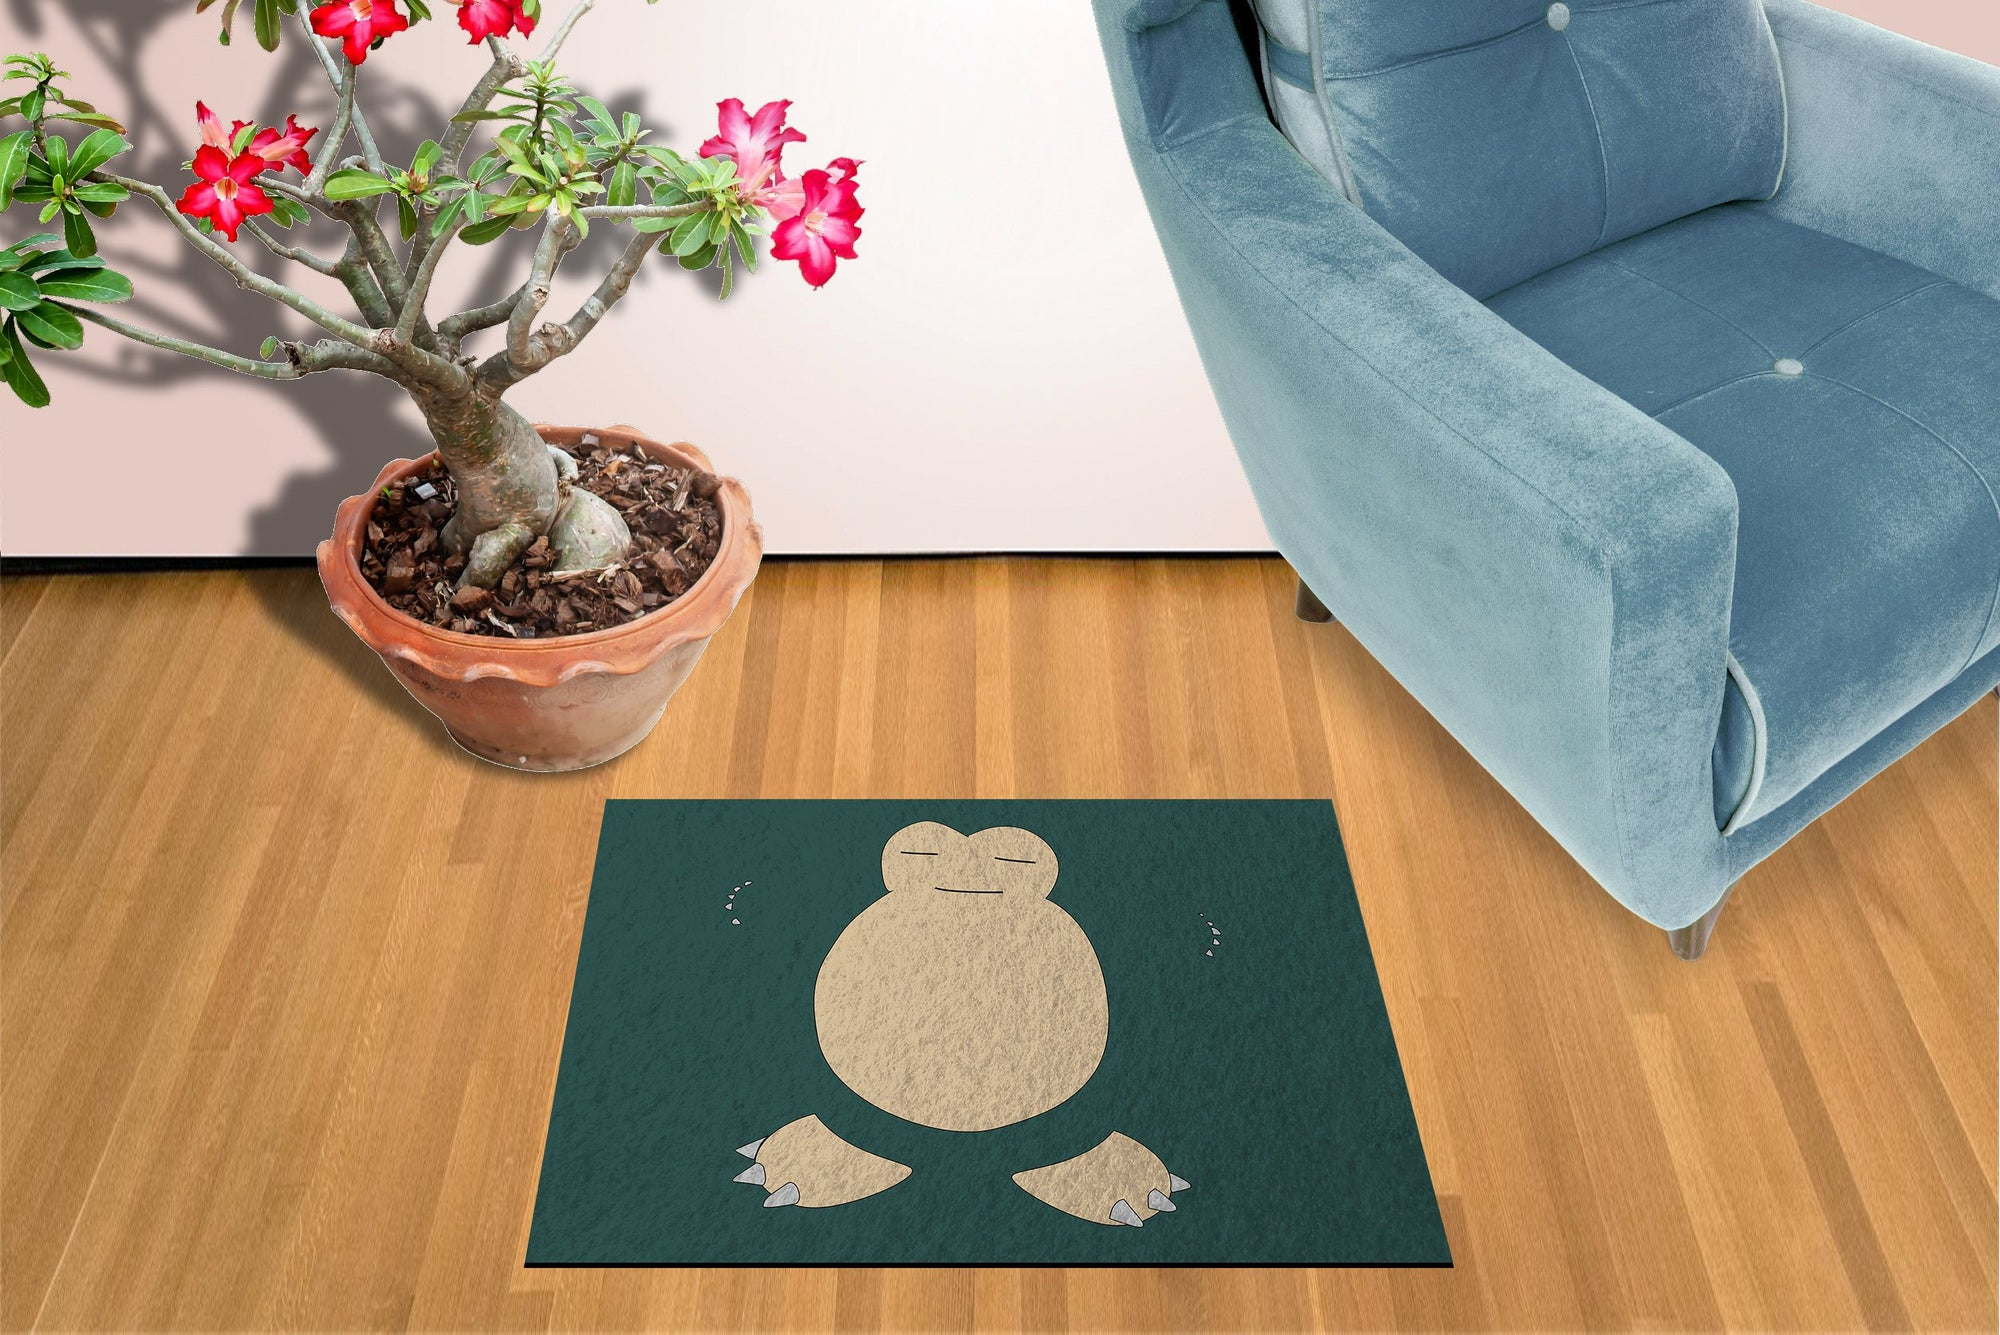 Snorlax Welcome Mat